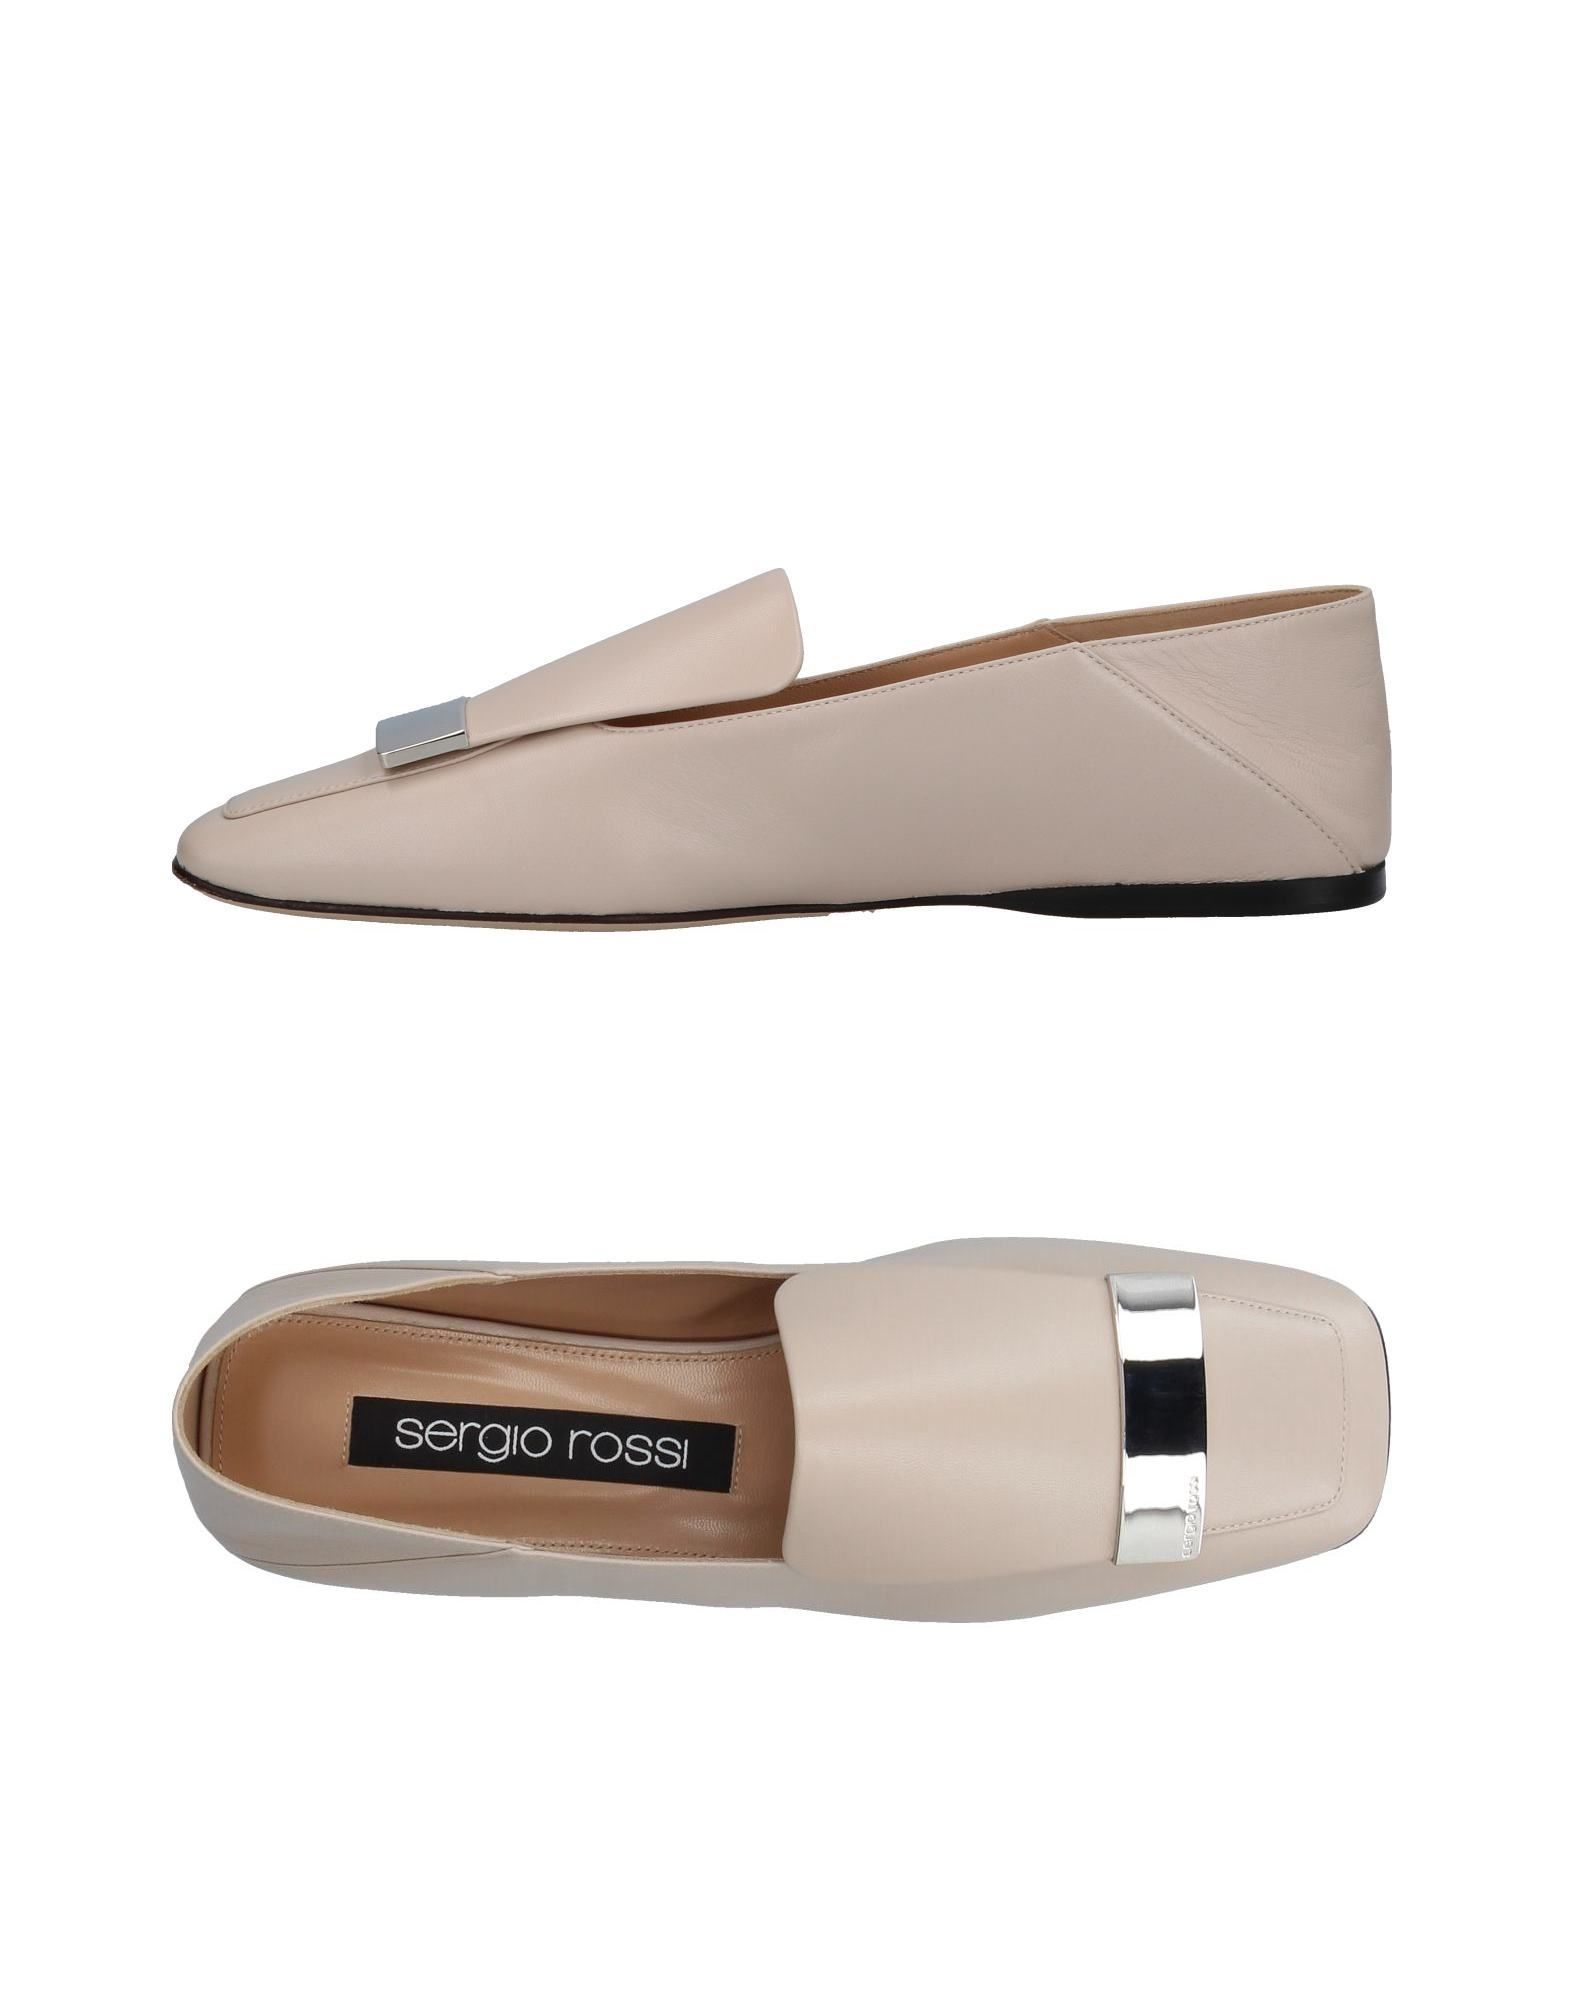 Sergio Rossi Loafers Loafers - Women Sergio Rossi Loafers Loafers online on  United Kingdom - 11386825QG 797e1e